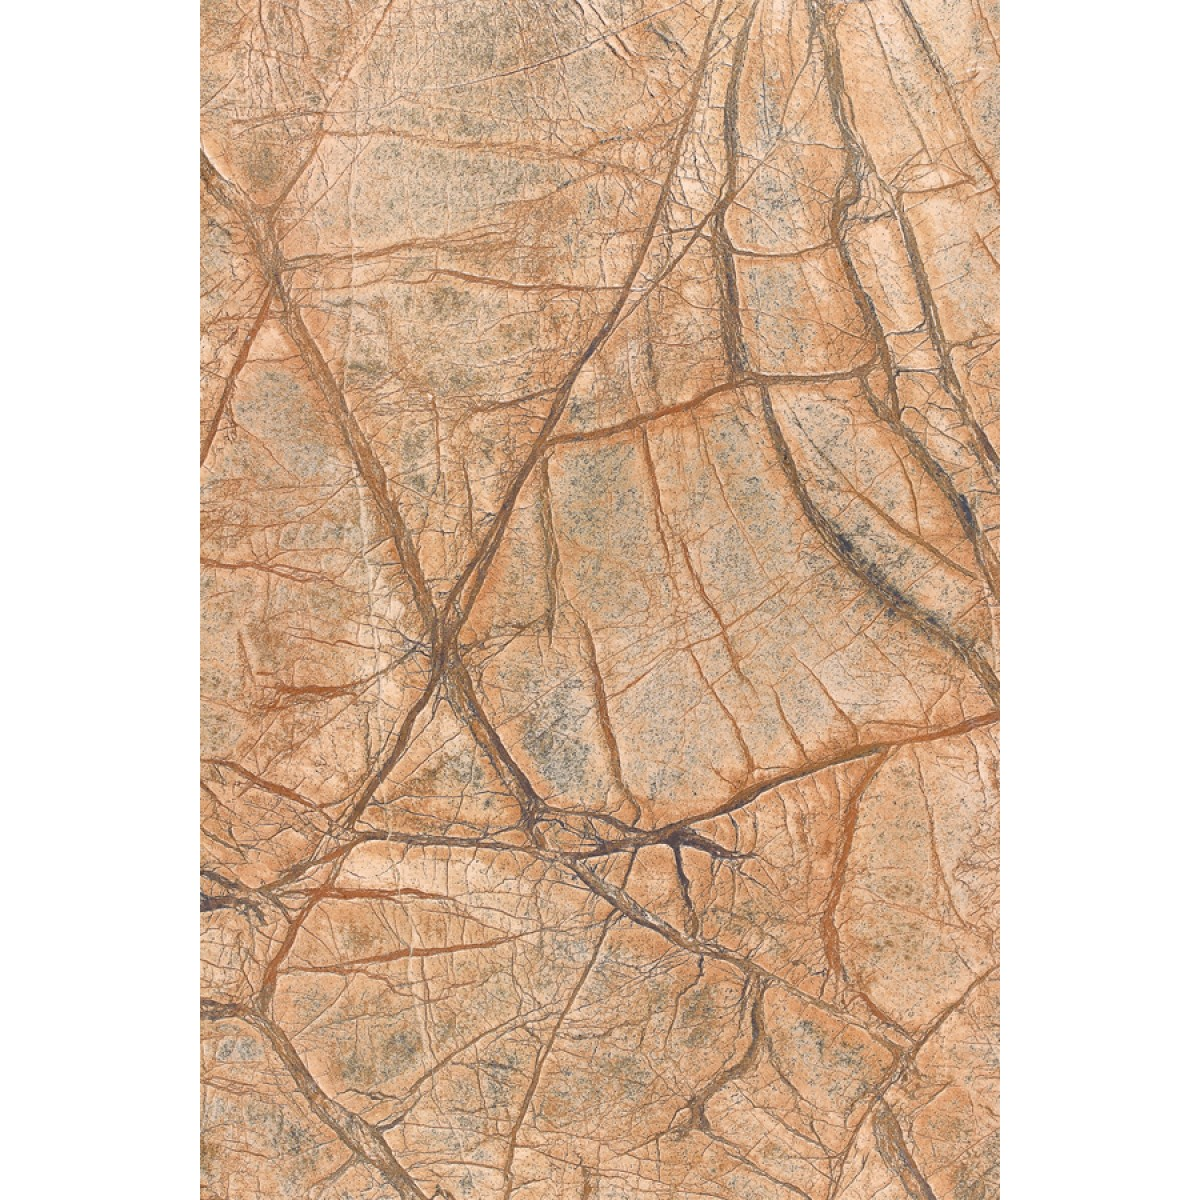 Rainforest Braun 60x90x1,2cm poliert